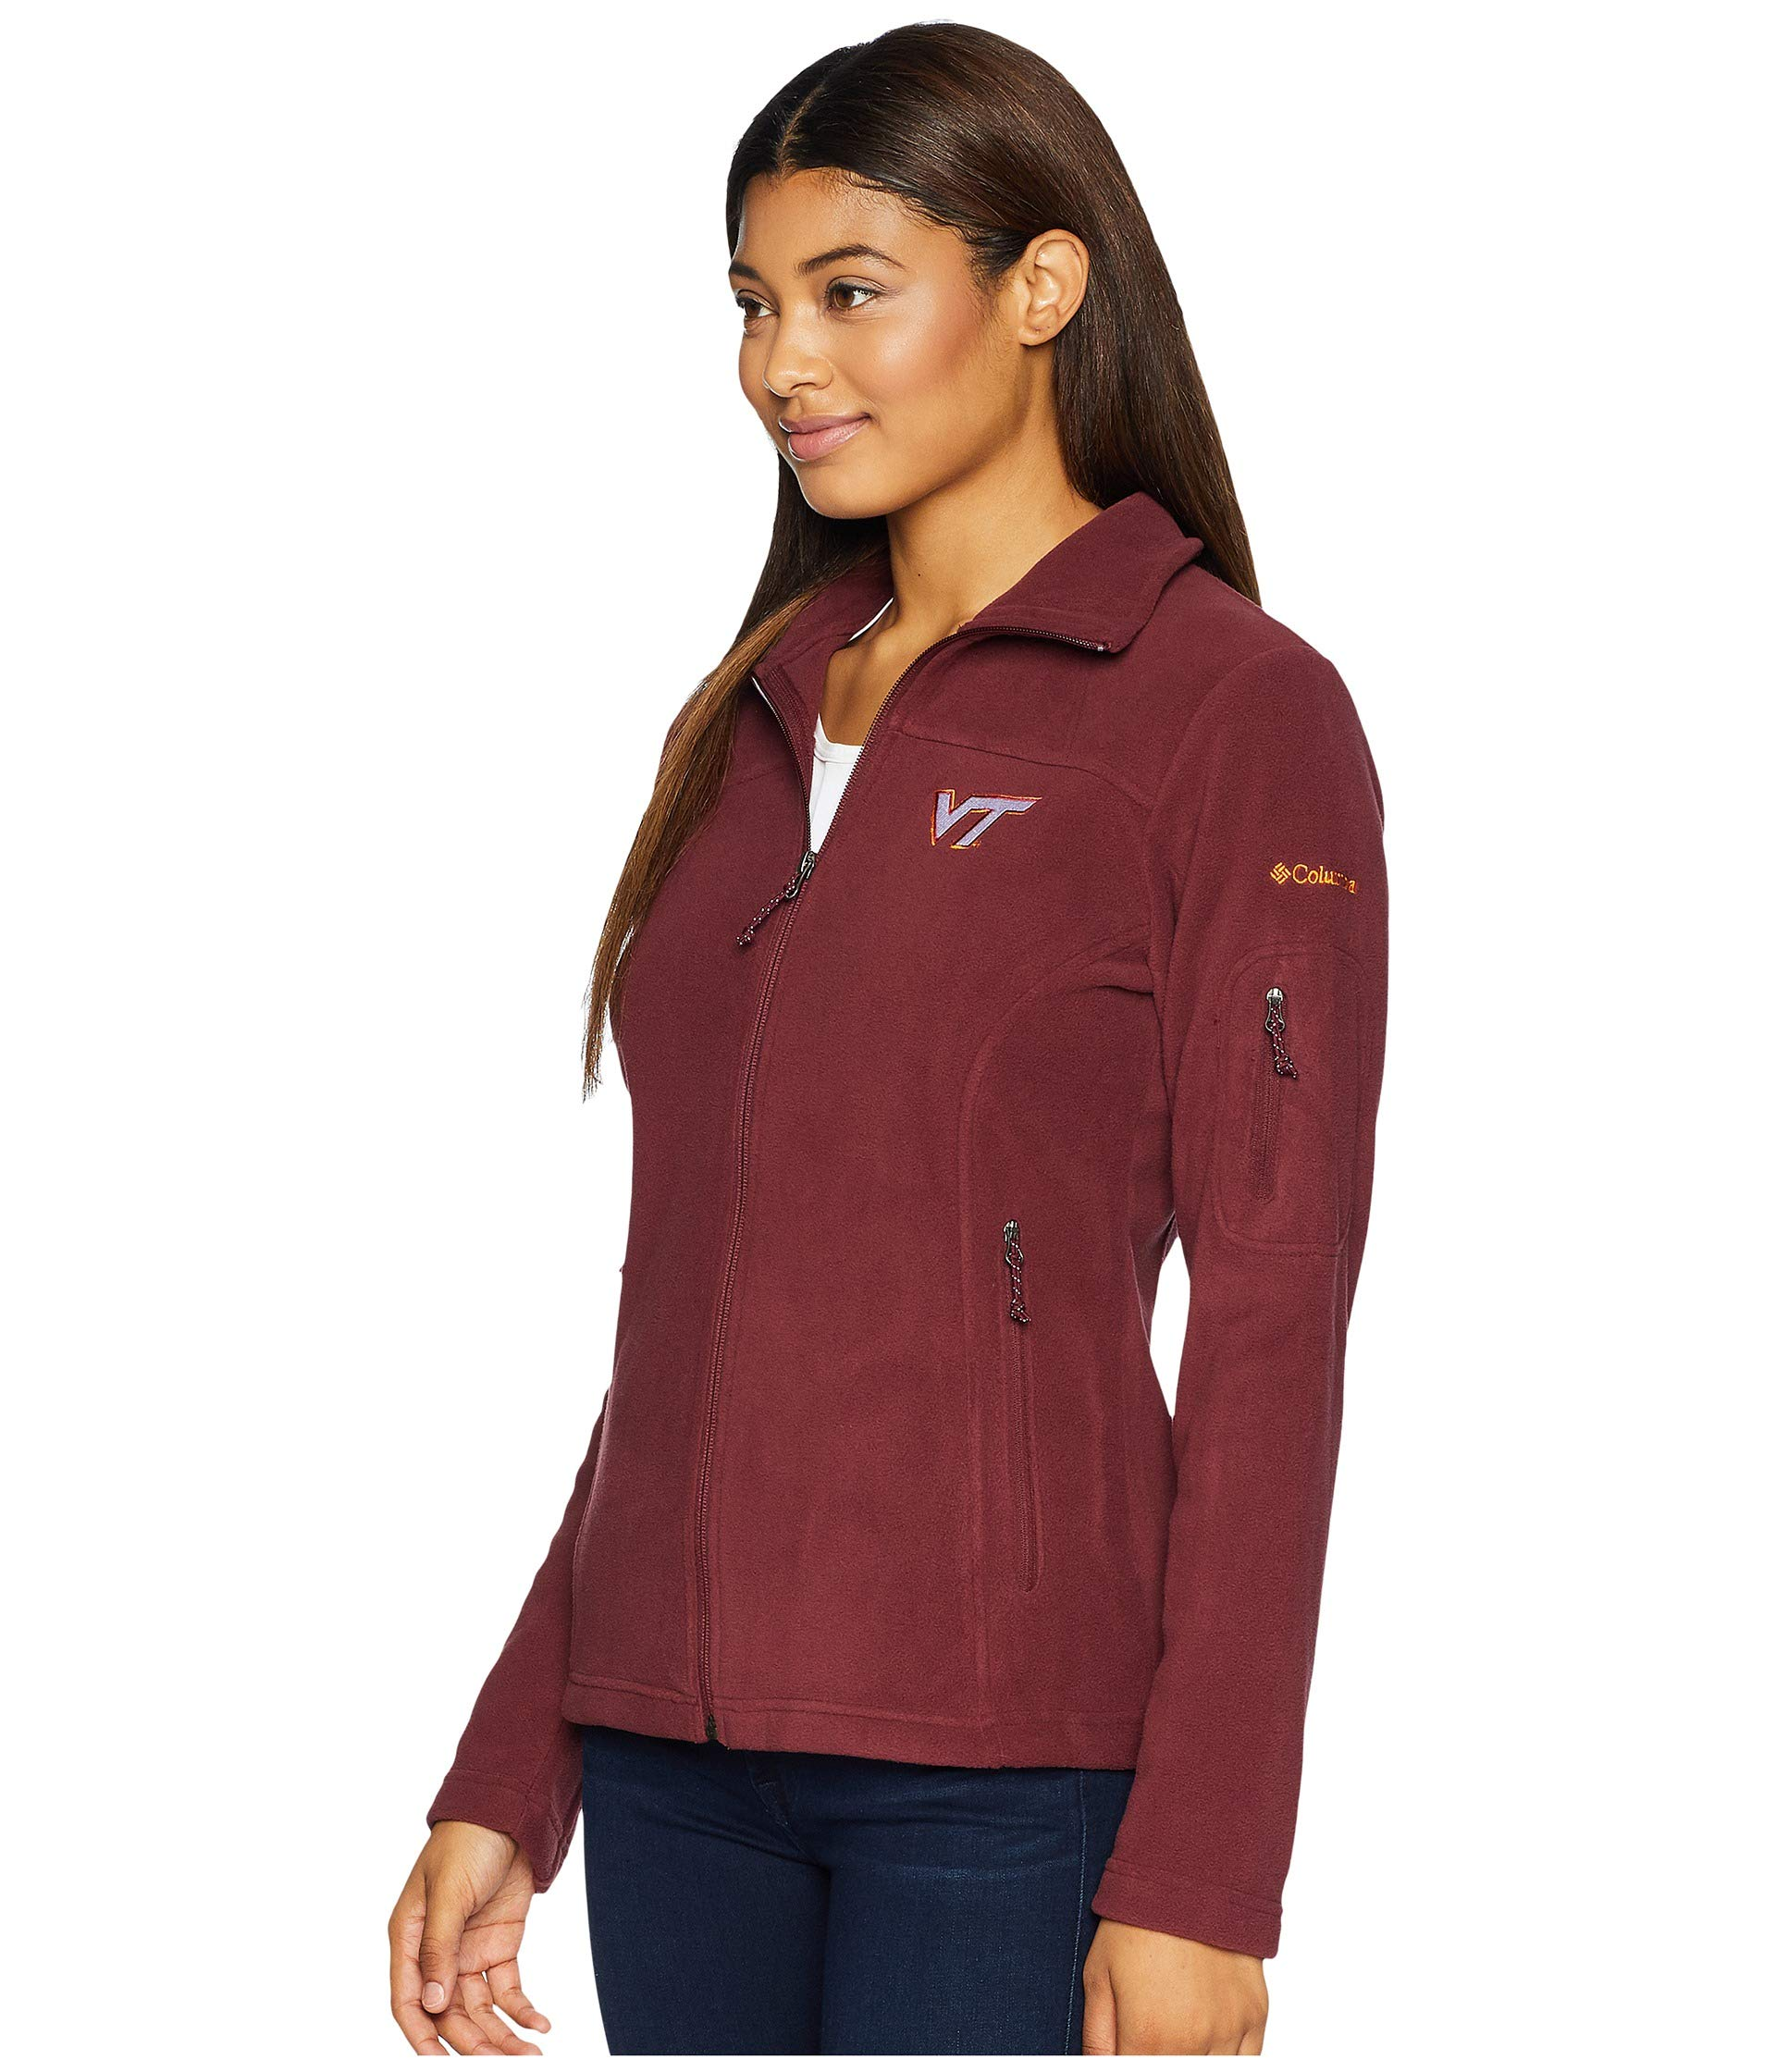 Give And Full Fleece Columbia Vt maroon Go™ Zip TqdWv5Z